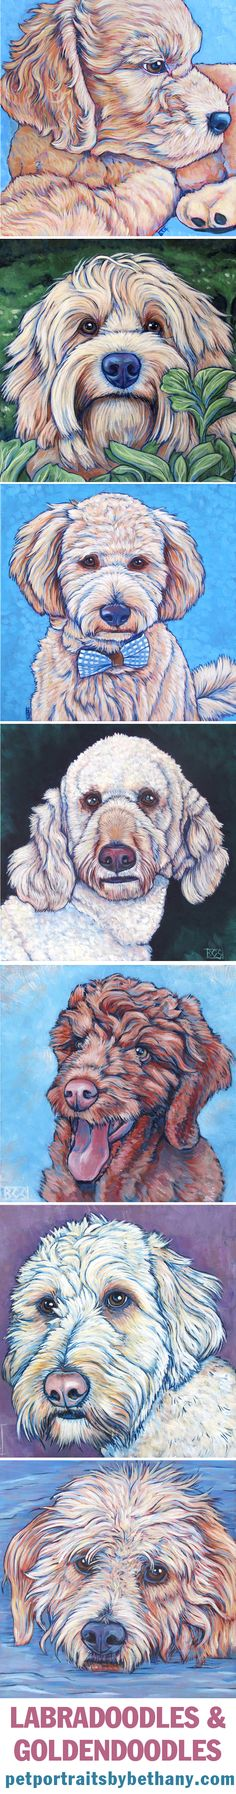 GoldenDoodle and Labradoodle Dogs by Bethany